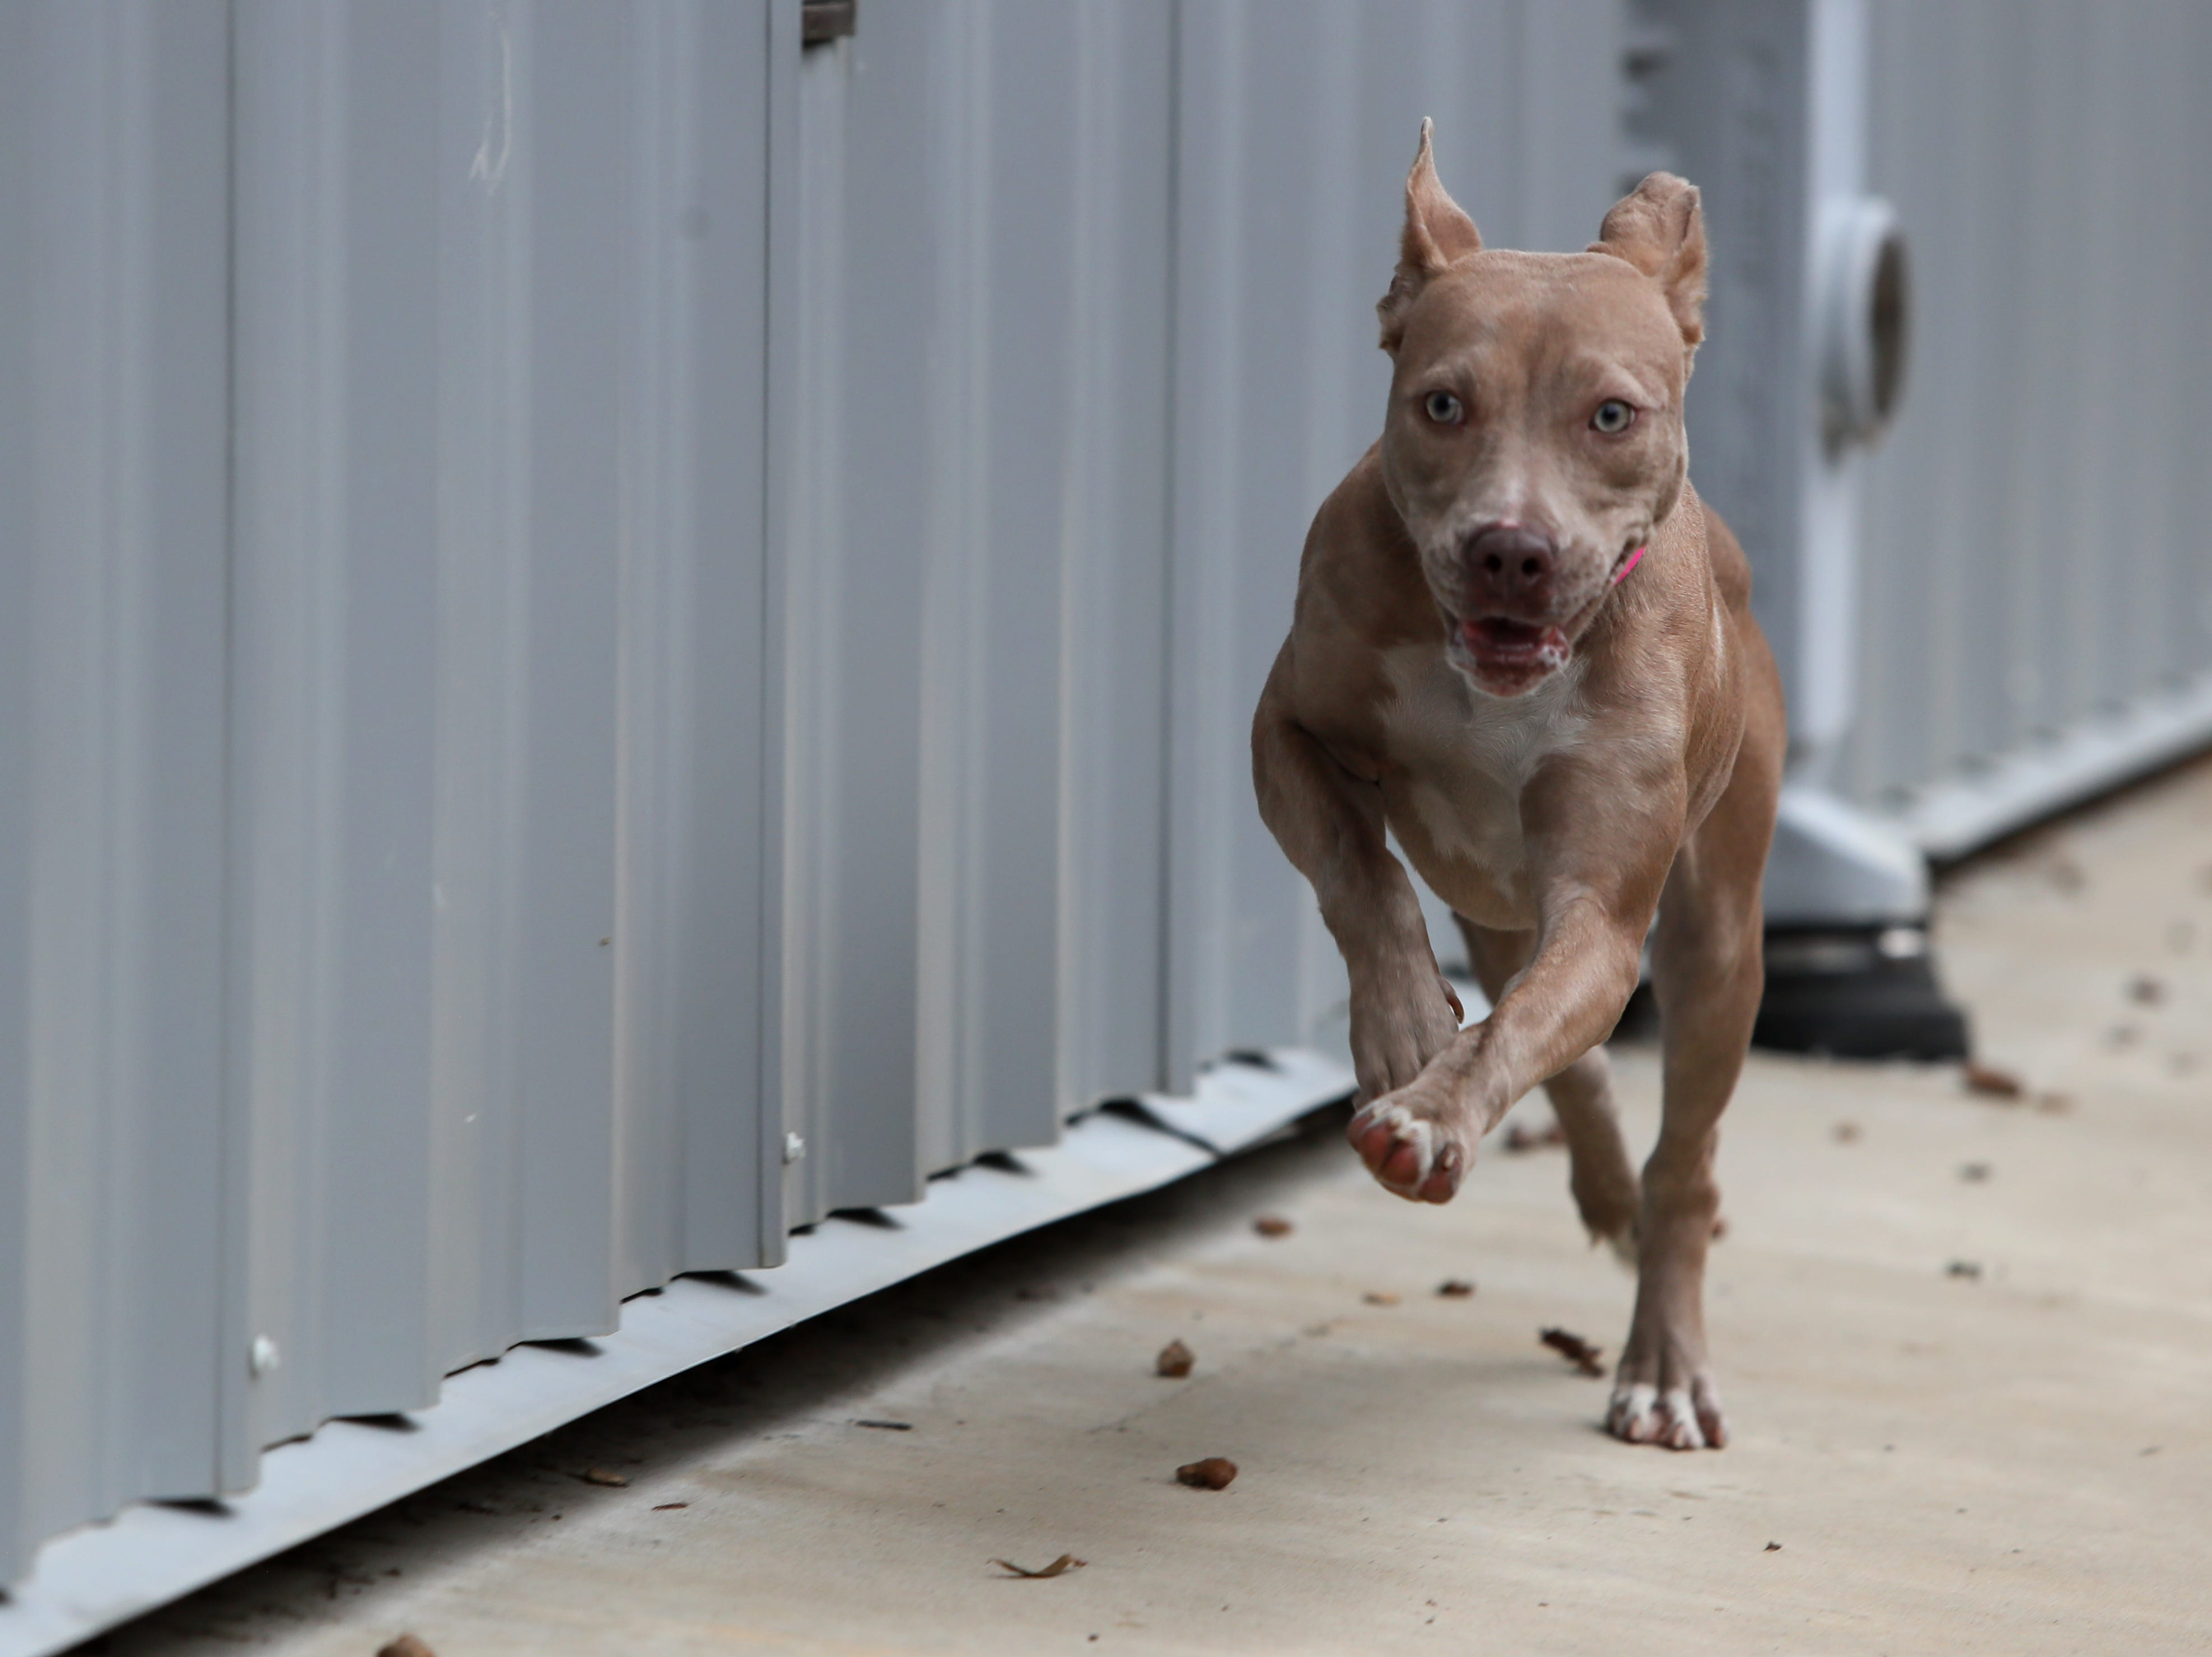 Peony, a 7-month-old female, who is a part of a weekly foster care program at the Memphis Animal Services on November, 14, 2018. The dog foster program aims to find temporary placement for dogs selected each week that are in the at-risk population of the shelter.